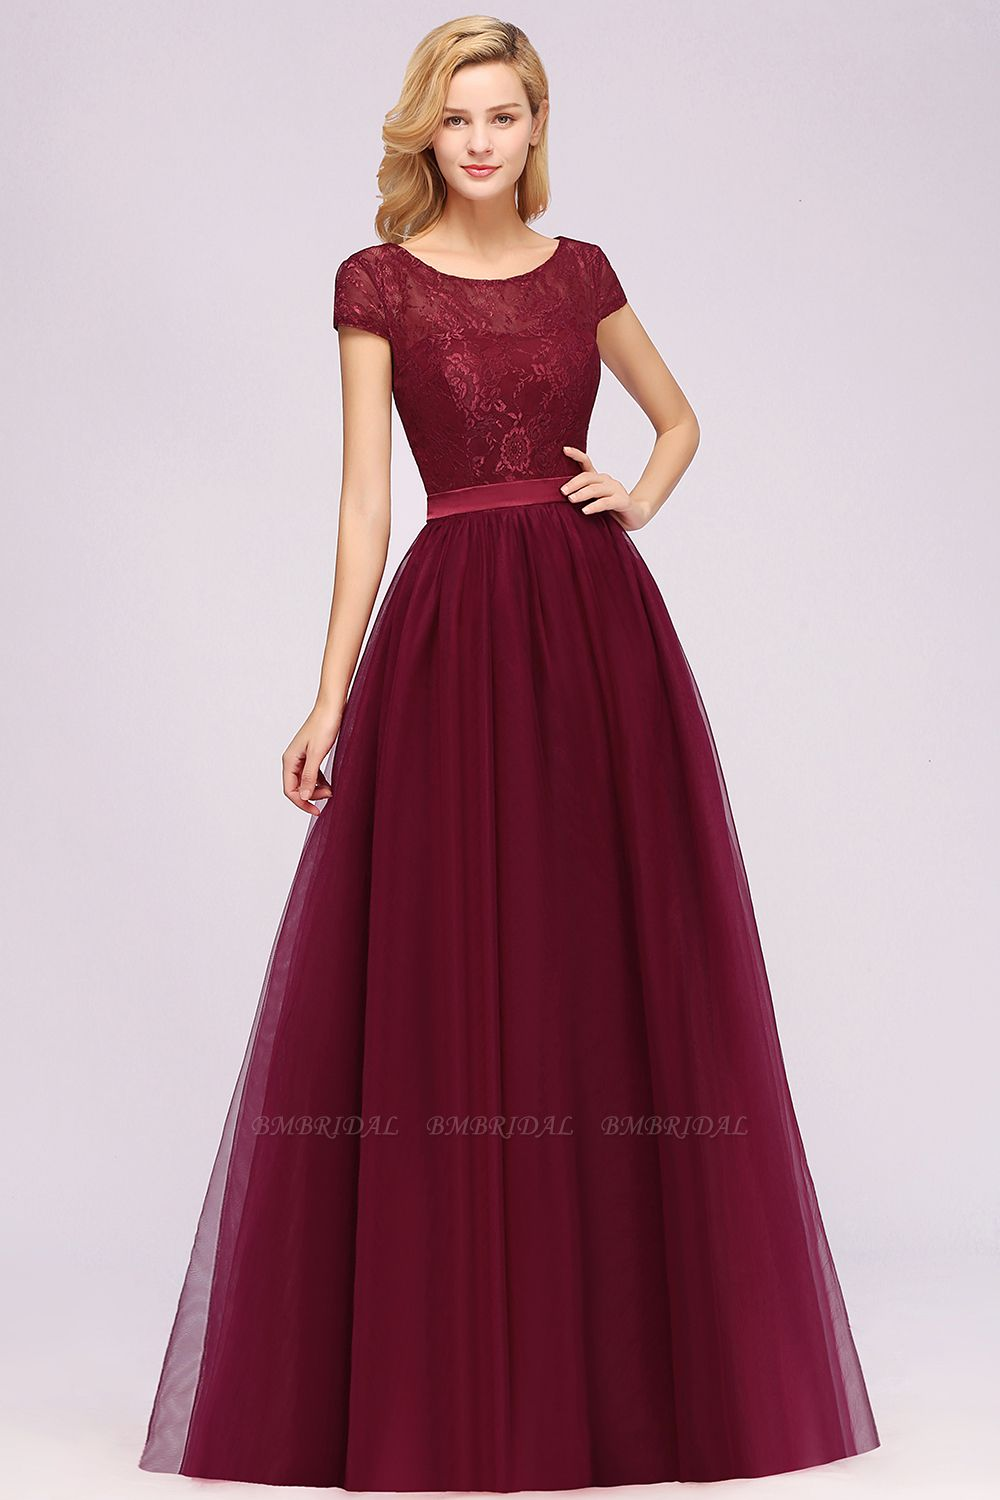 Elegant Lace Cap Sleeves Burgundy Bridesmaid Dresses Cheap